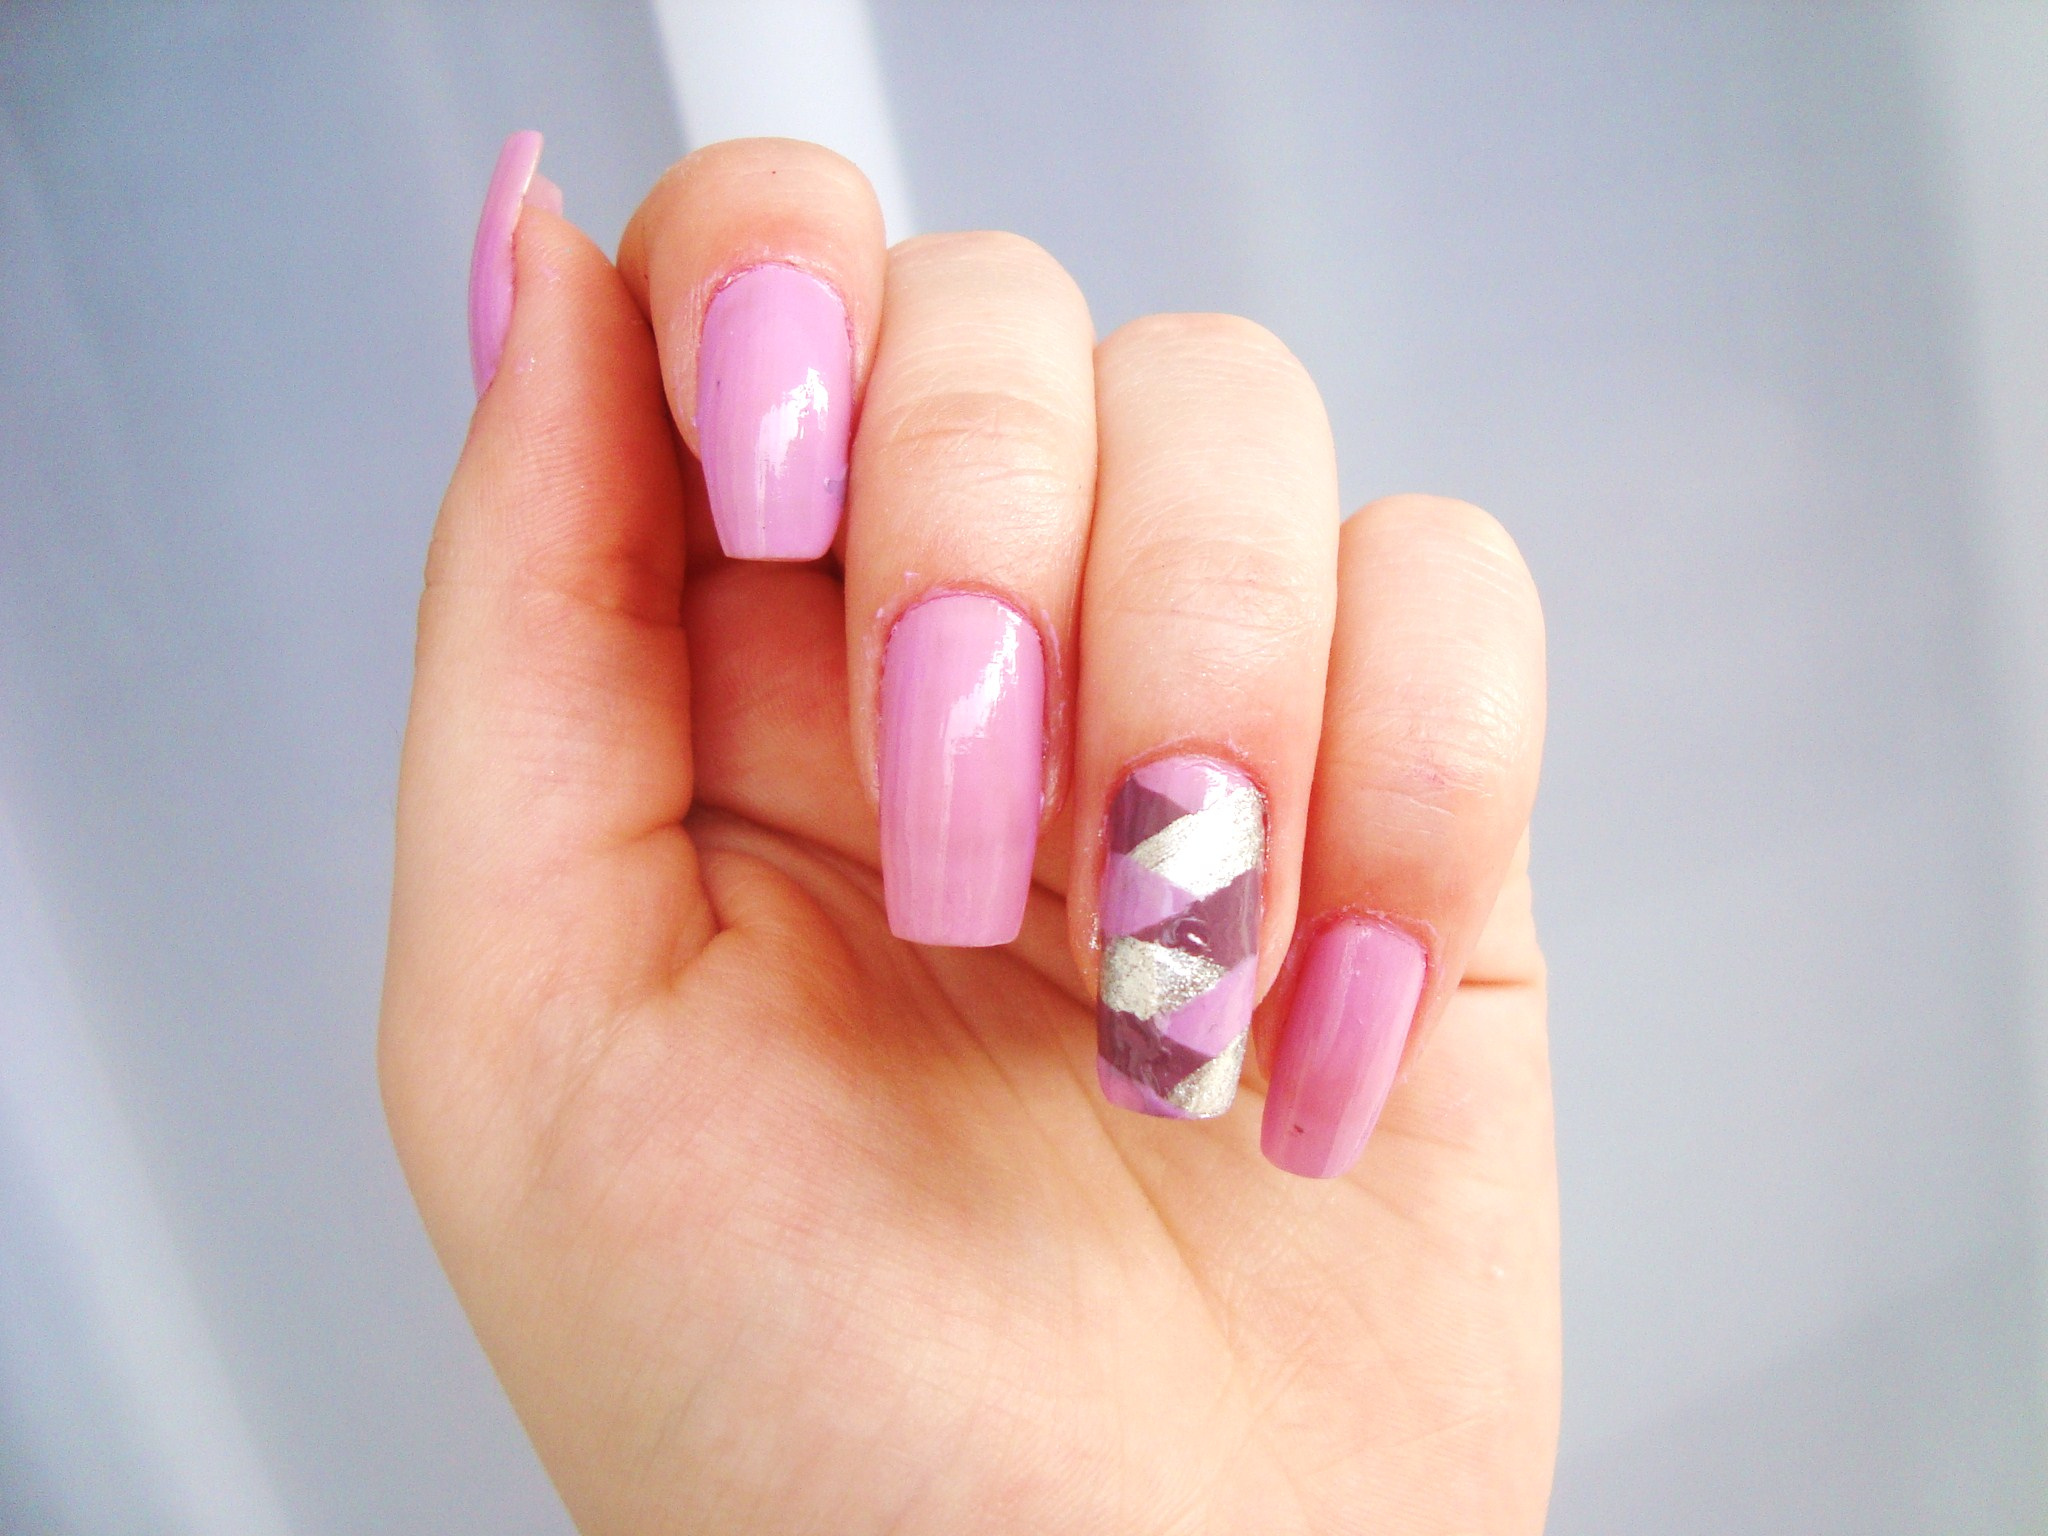 Shell or Gel Nail Extension Image